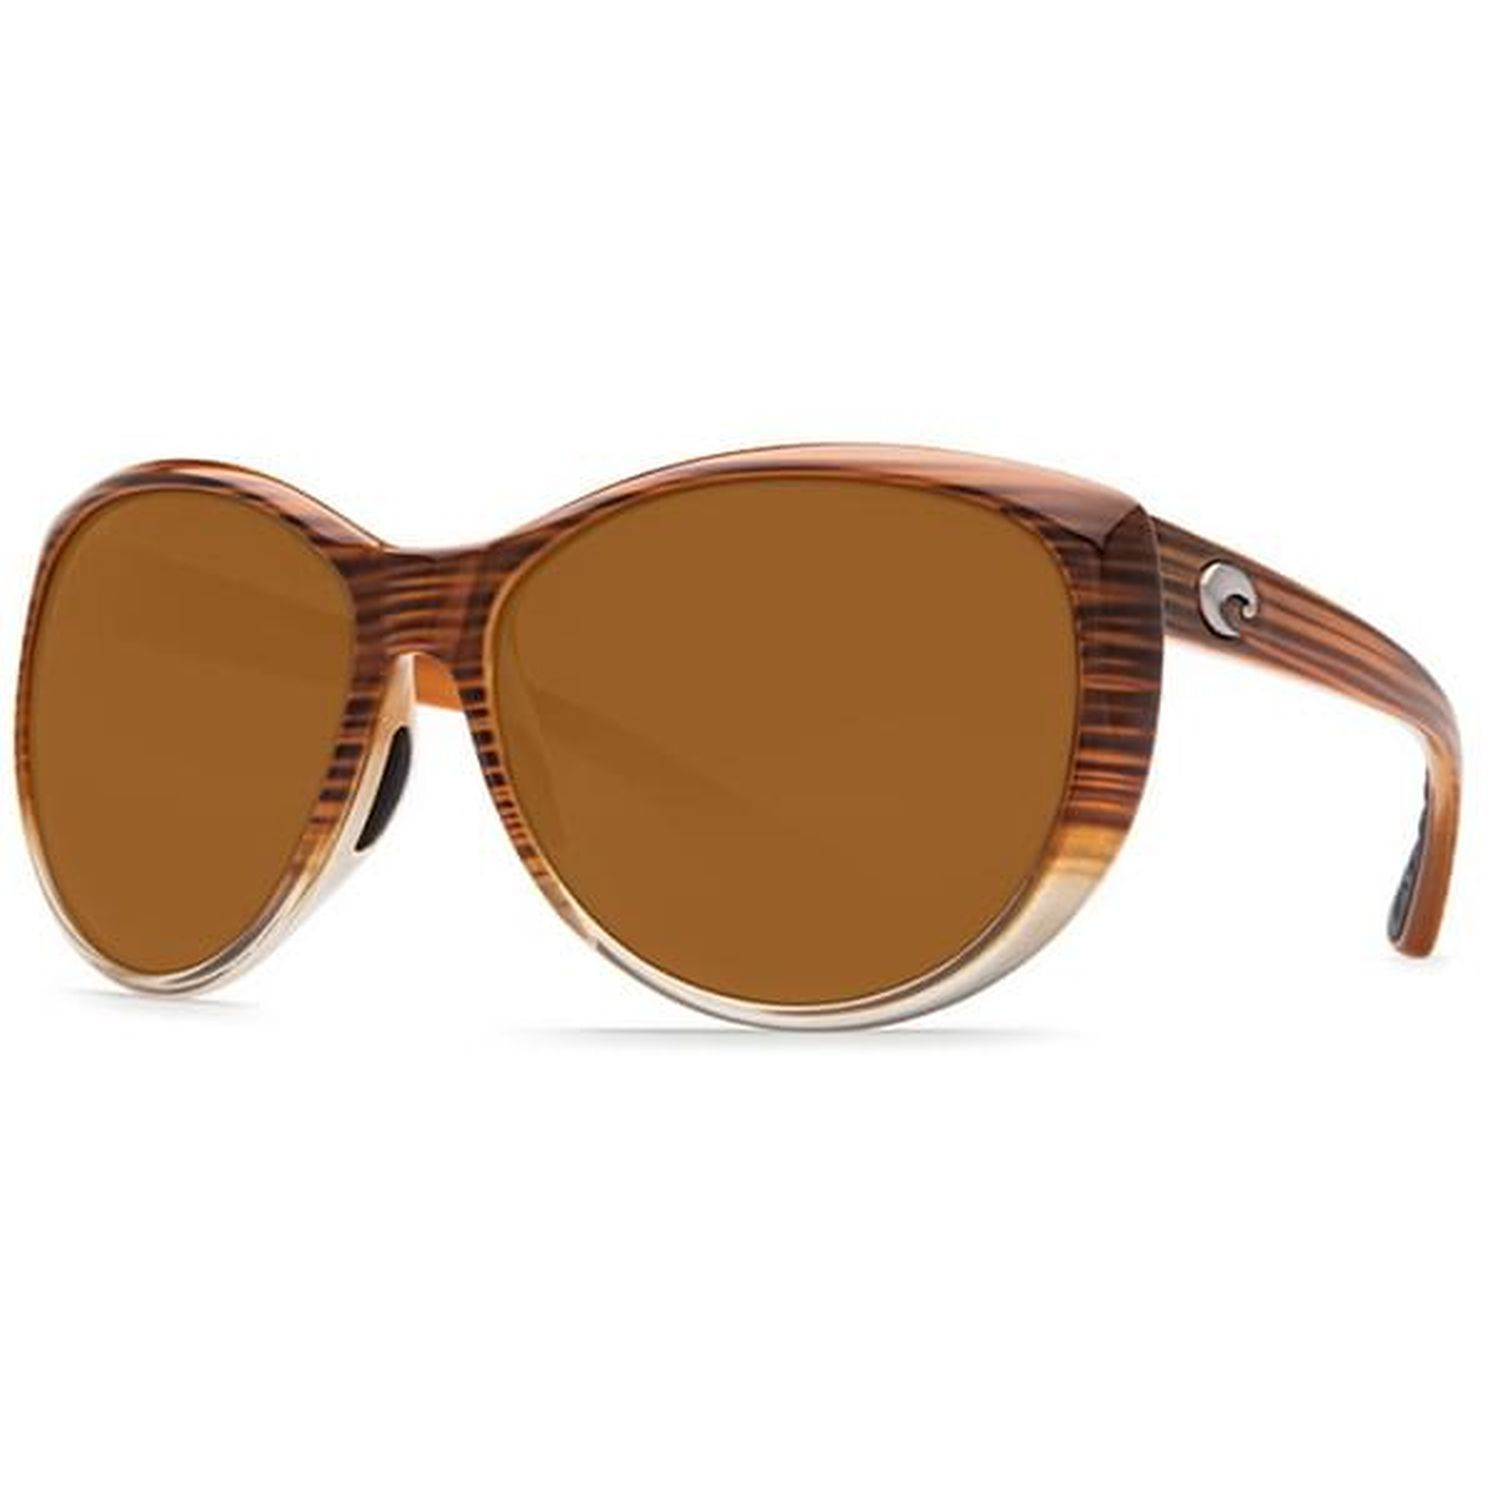 837a311656e47 Costa Del Mar LM 81 OCP La Mar Sunglasses 580P Frame Brown Lens